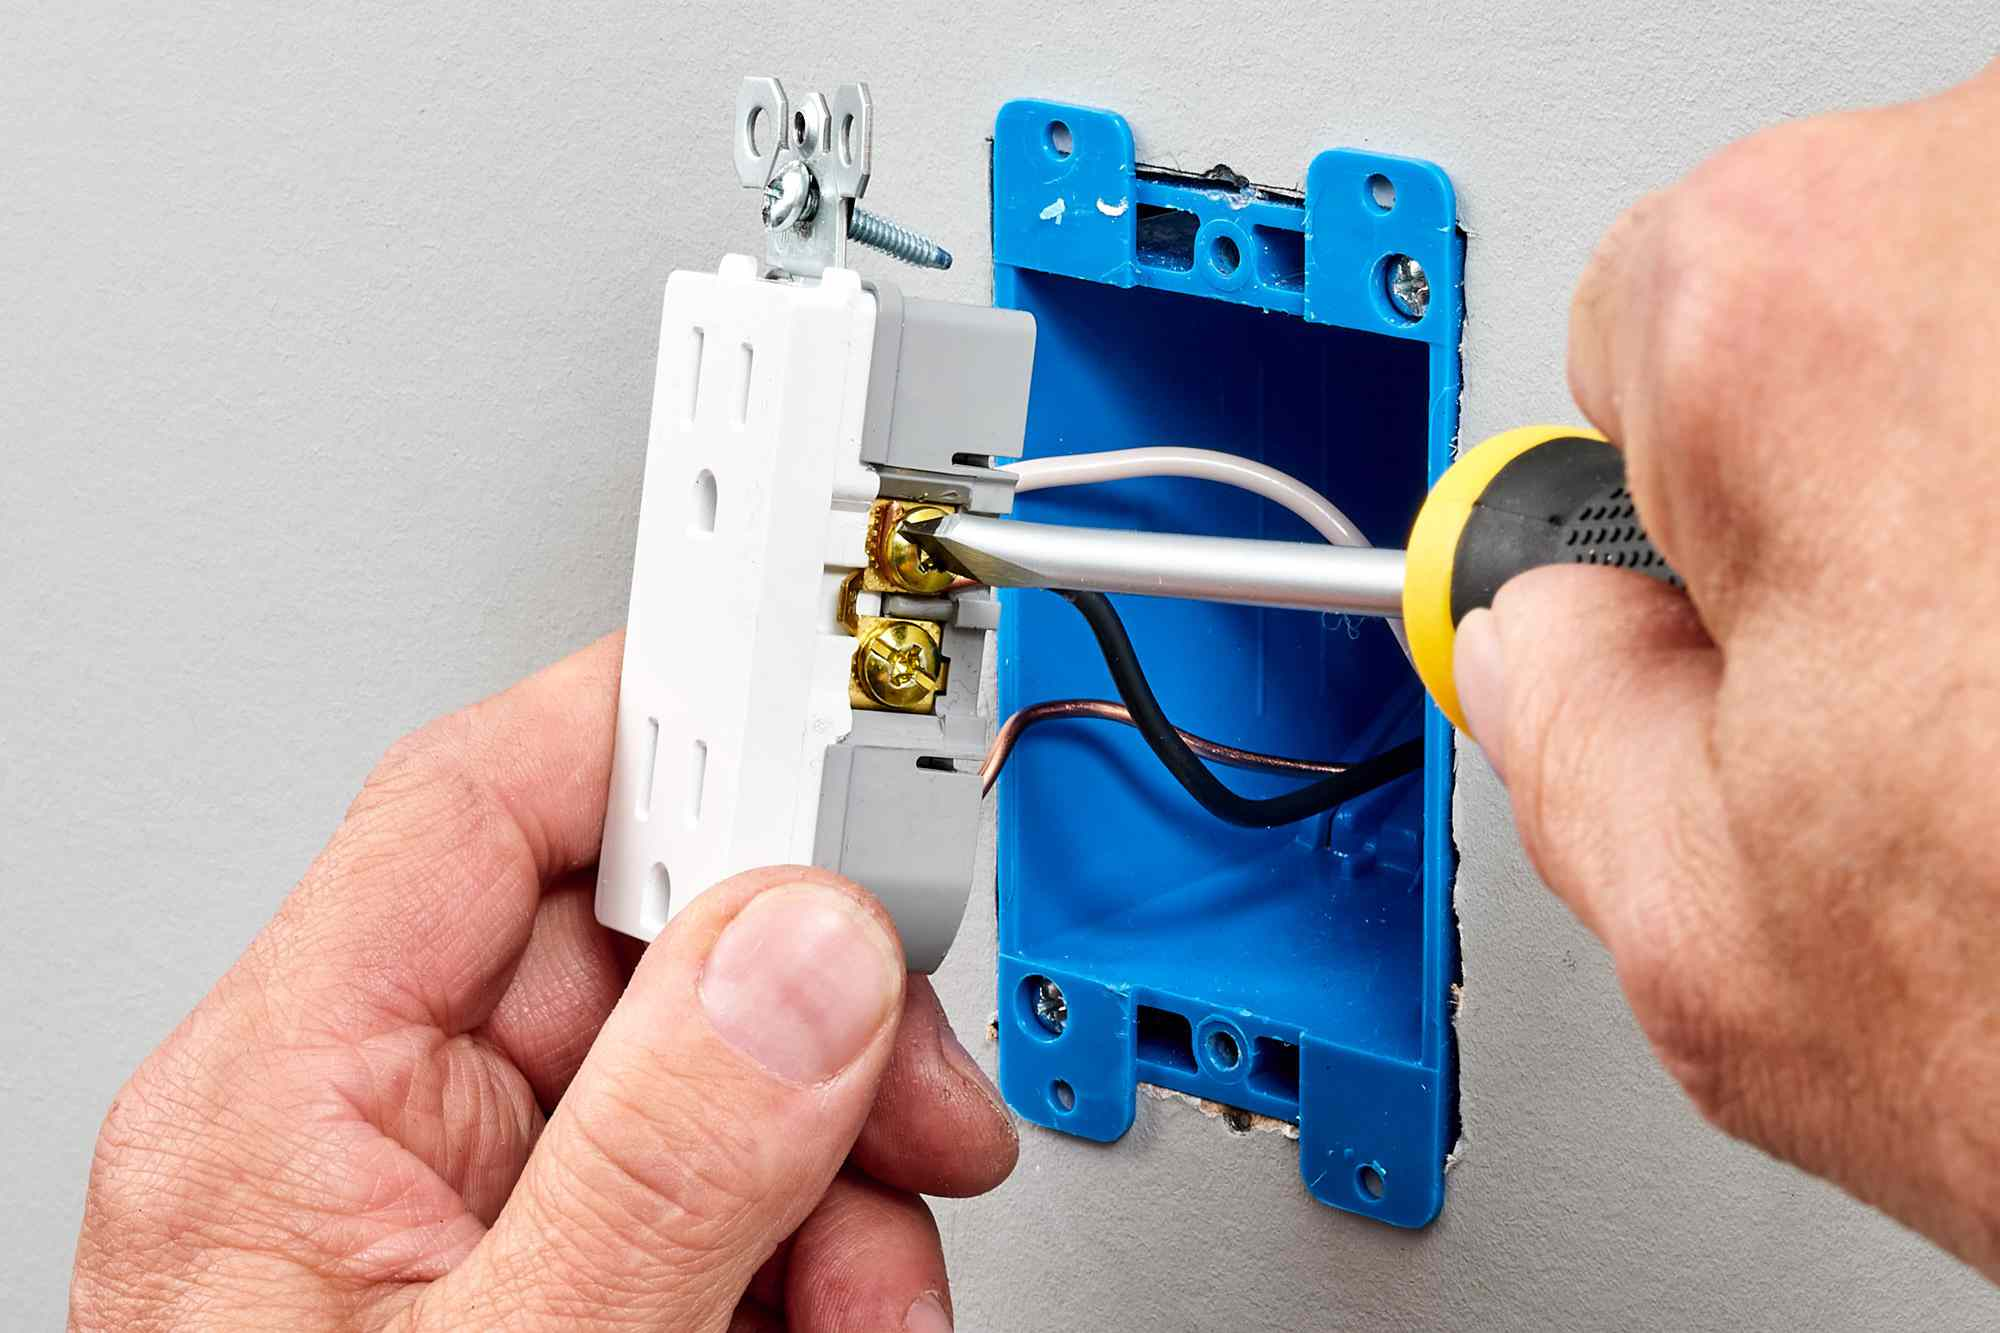 New outlet receptacle attached to wires and securing screw terminals with screw driver